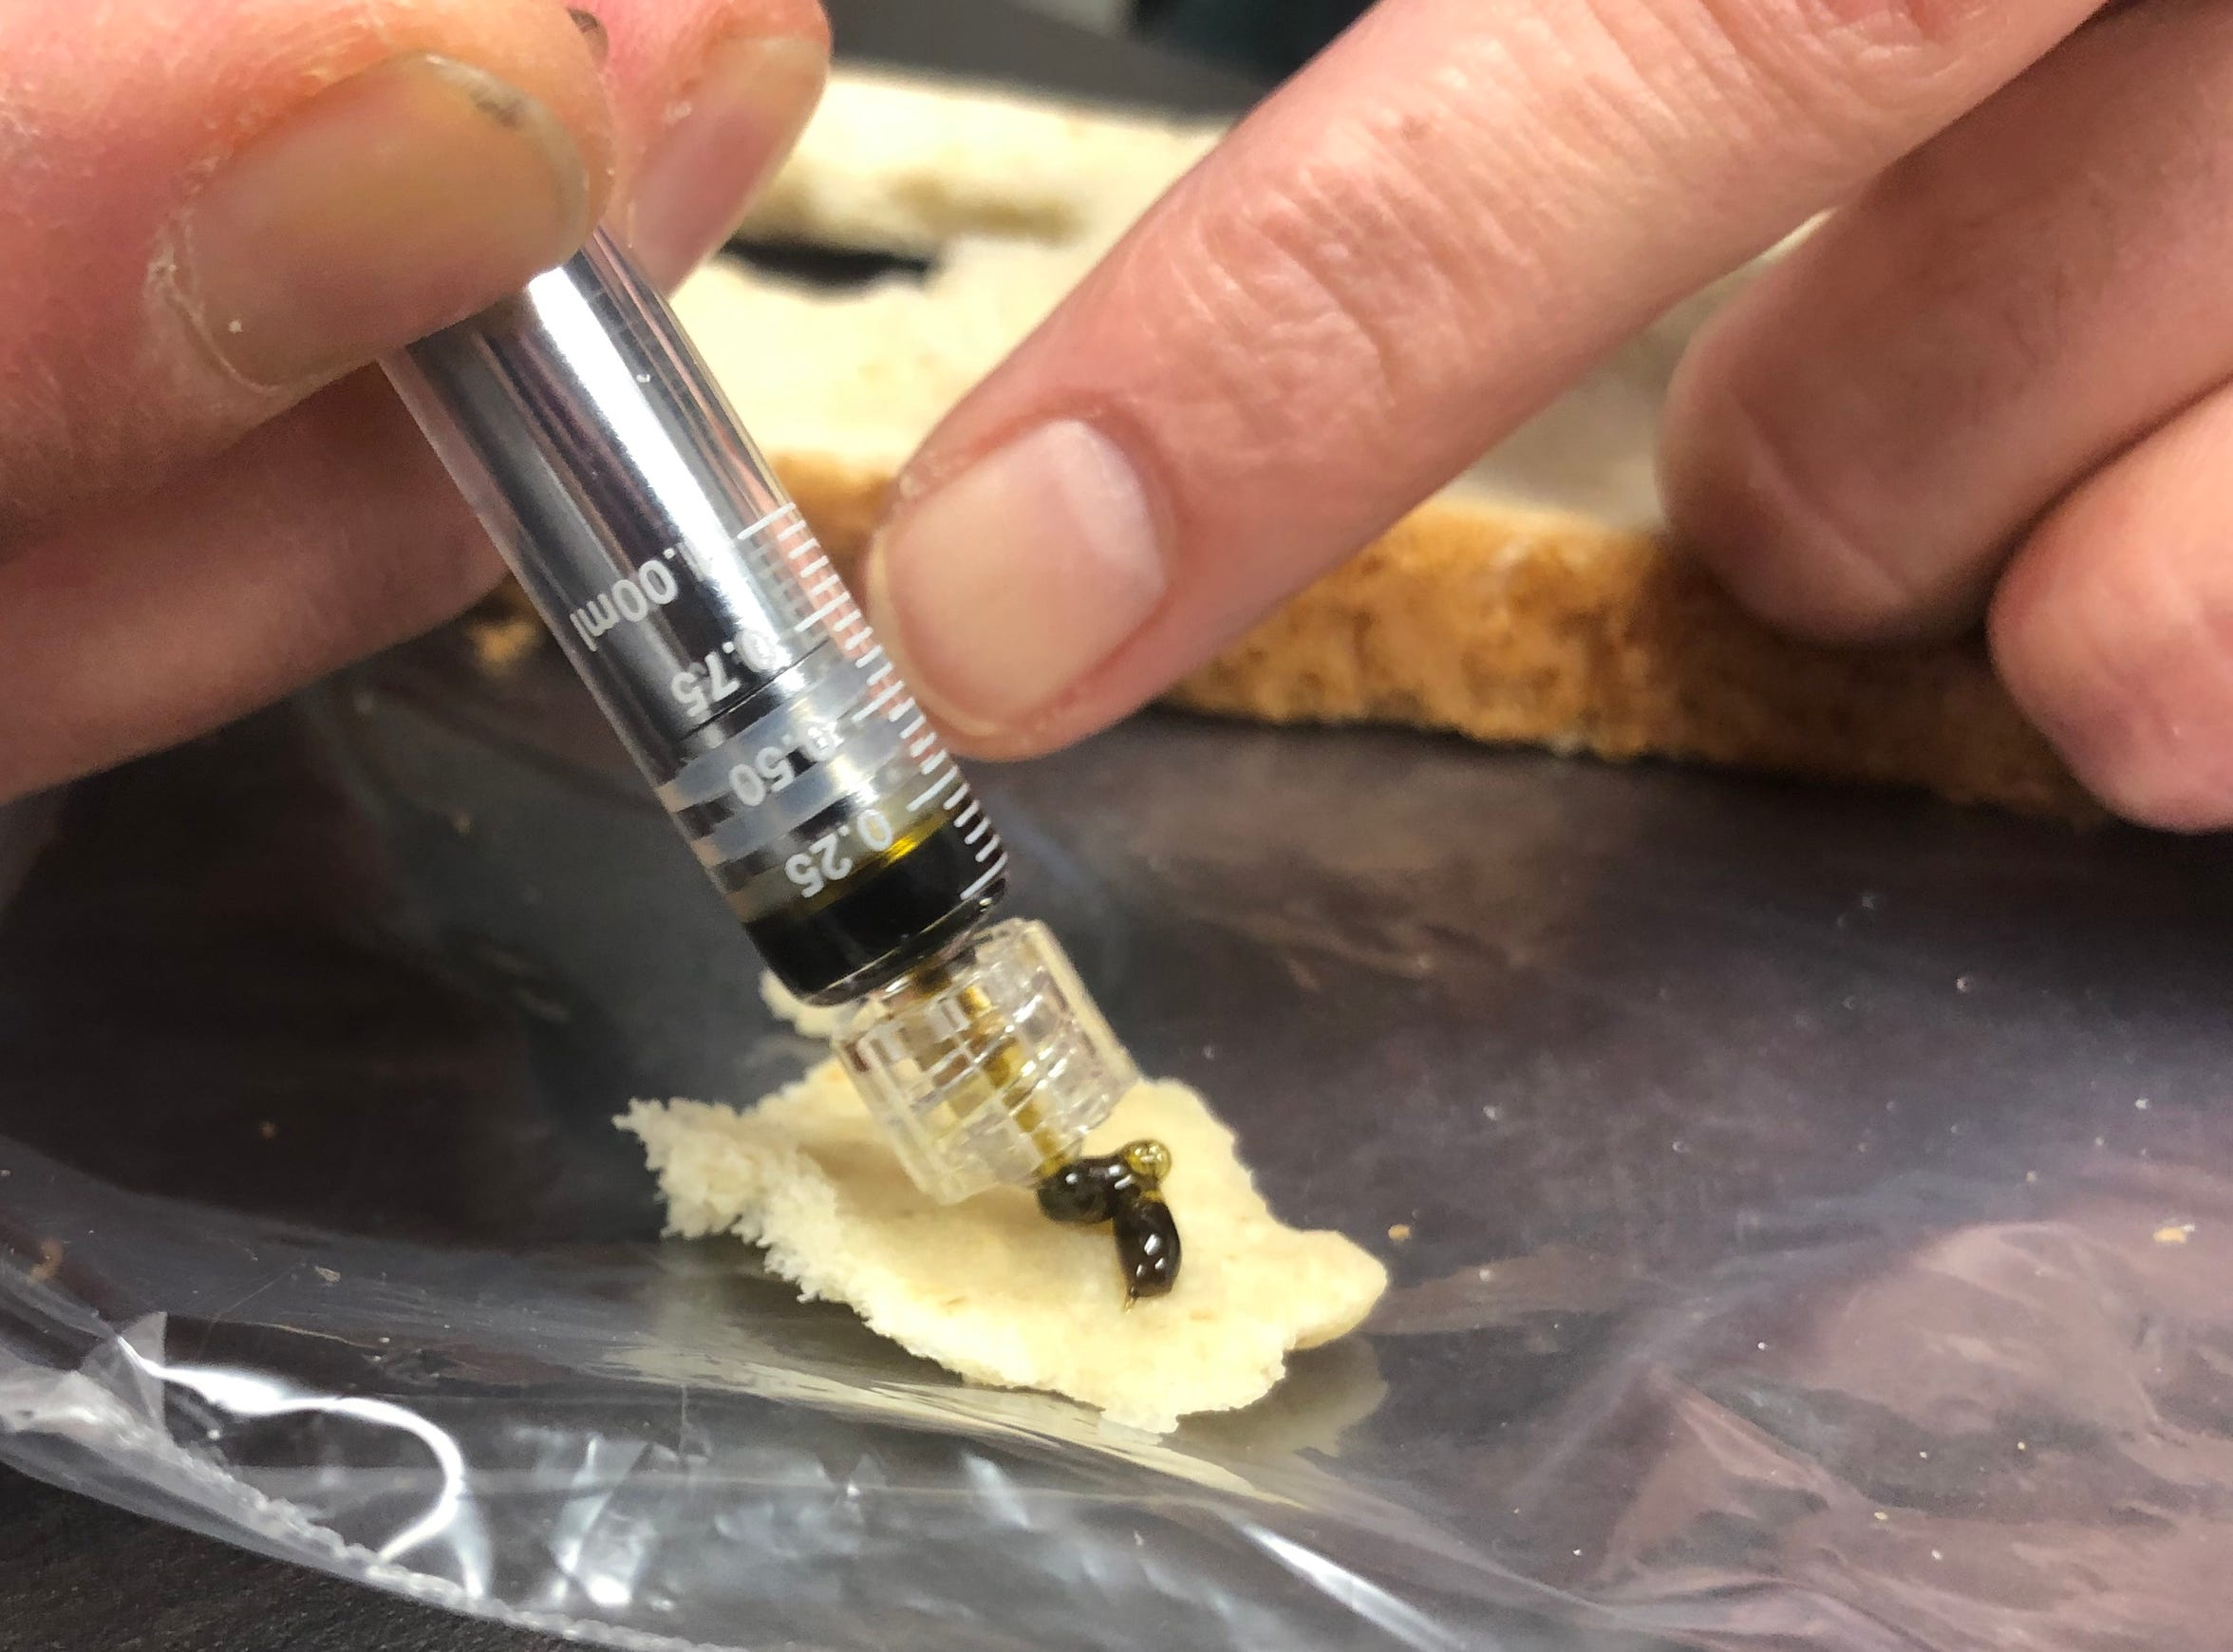 Peter DeVitis spreads some medical marijuana oil on to a piece of bread the afternoon of Tuesday, Feb. 19. DeVitis began using the product last spring to treat his chronic pain caused by diabetes.